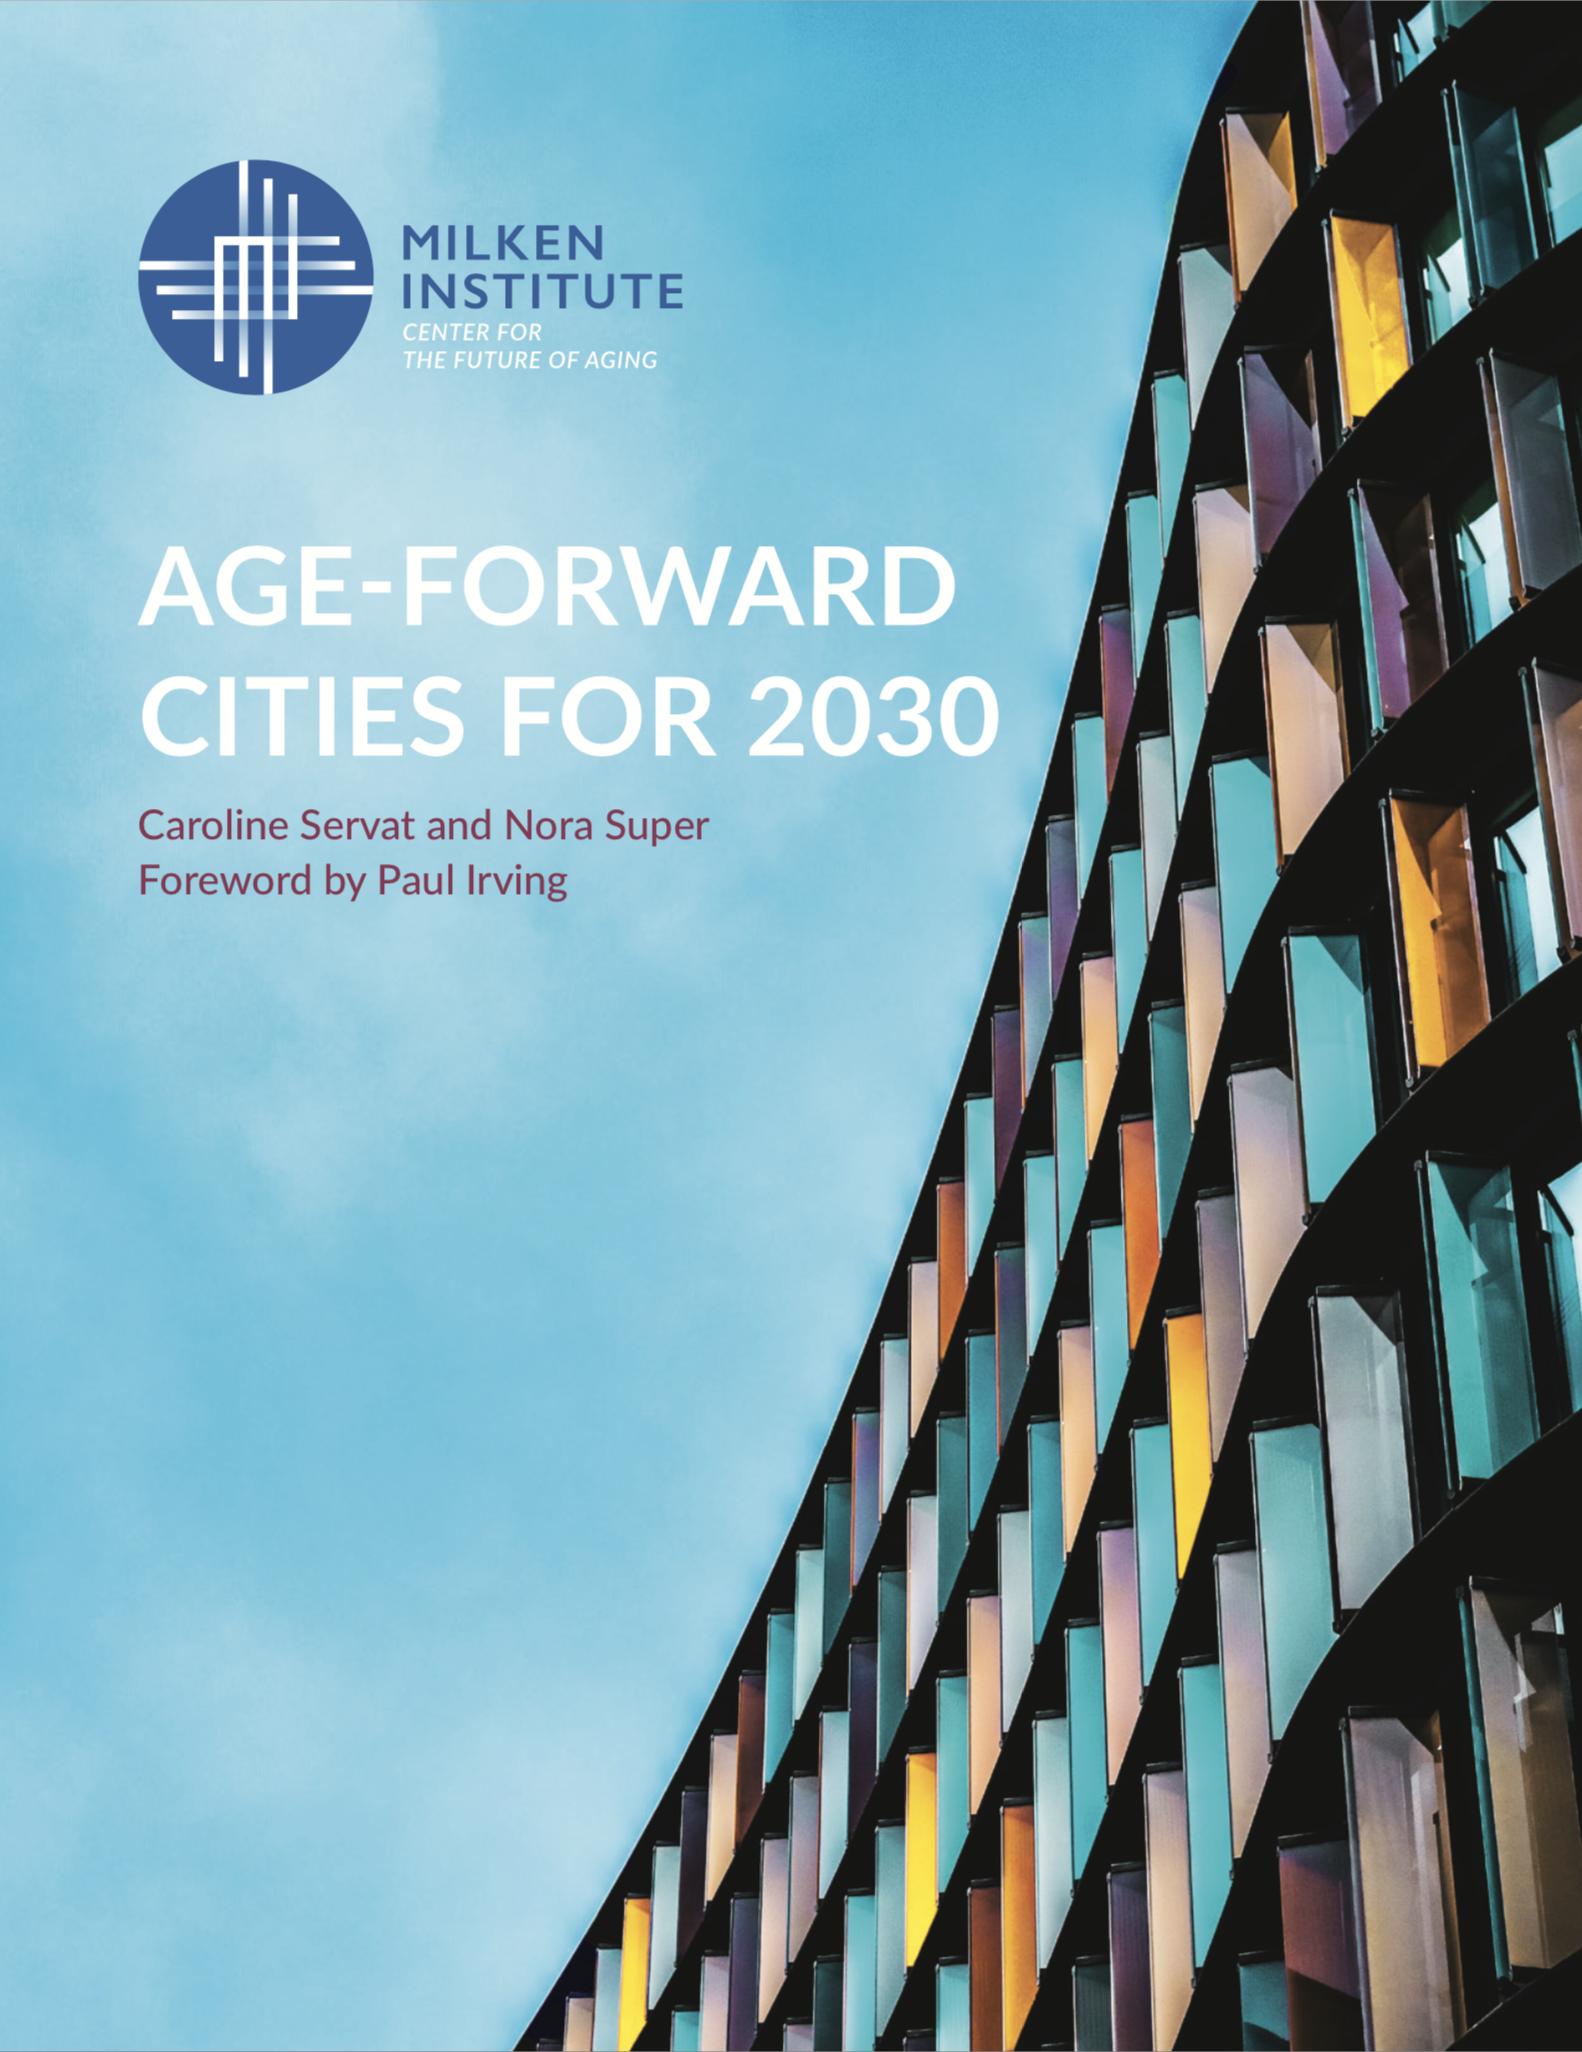 https://milkeninstitute.org/reports/age-forward-cities-2030